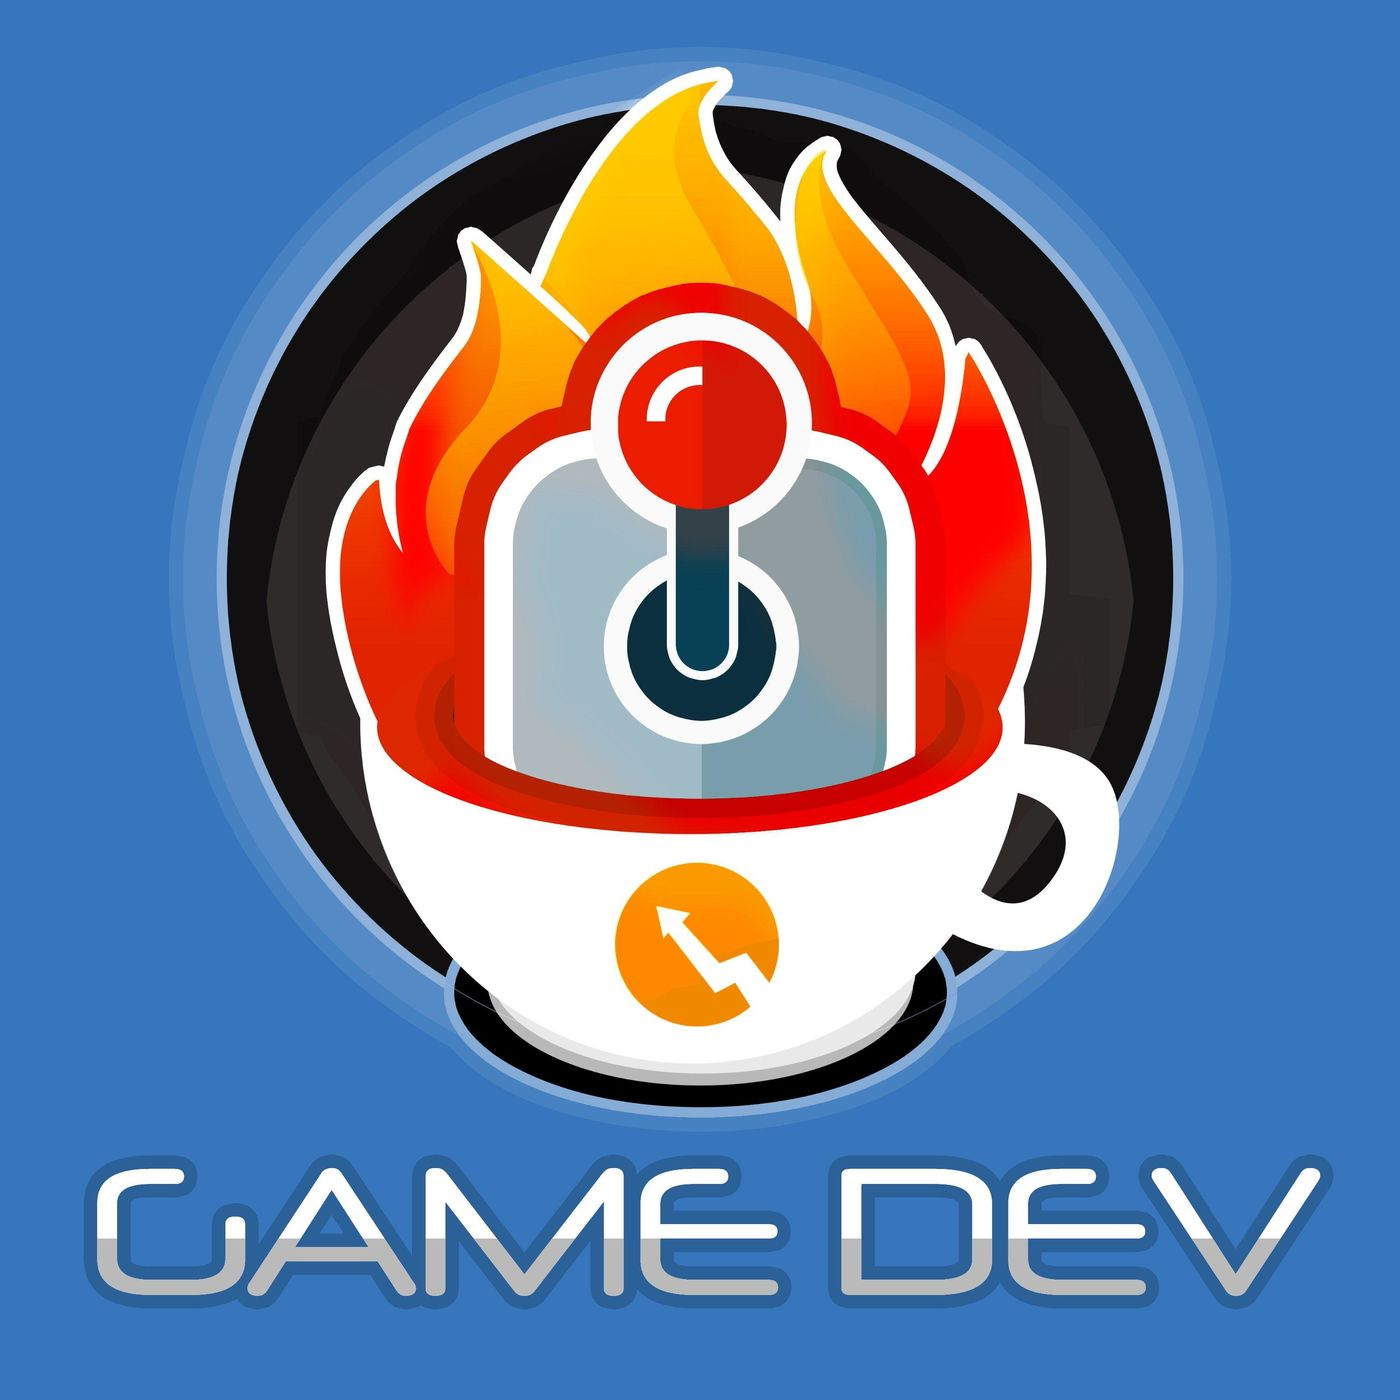 016: Finish Your Damn Game - 5 Common Developer Pitfalls that can stop you getting to Launch Day.